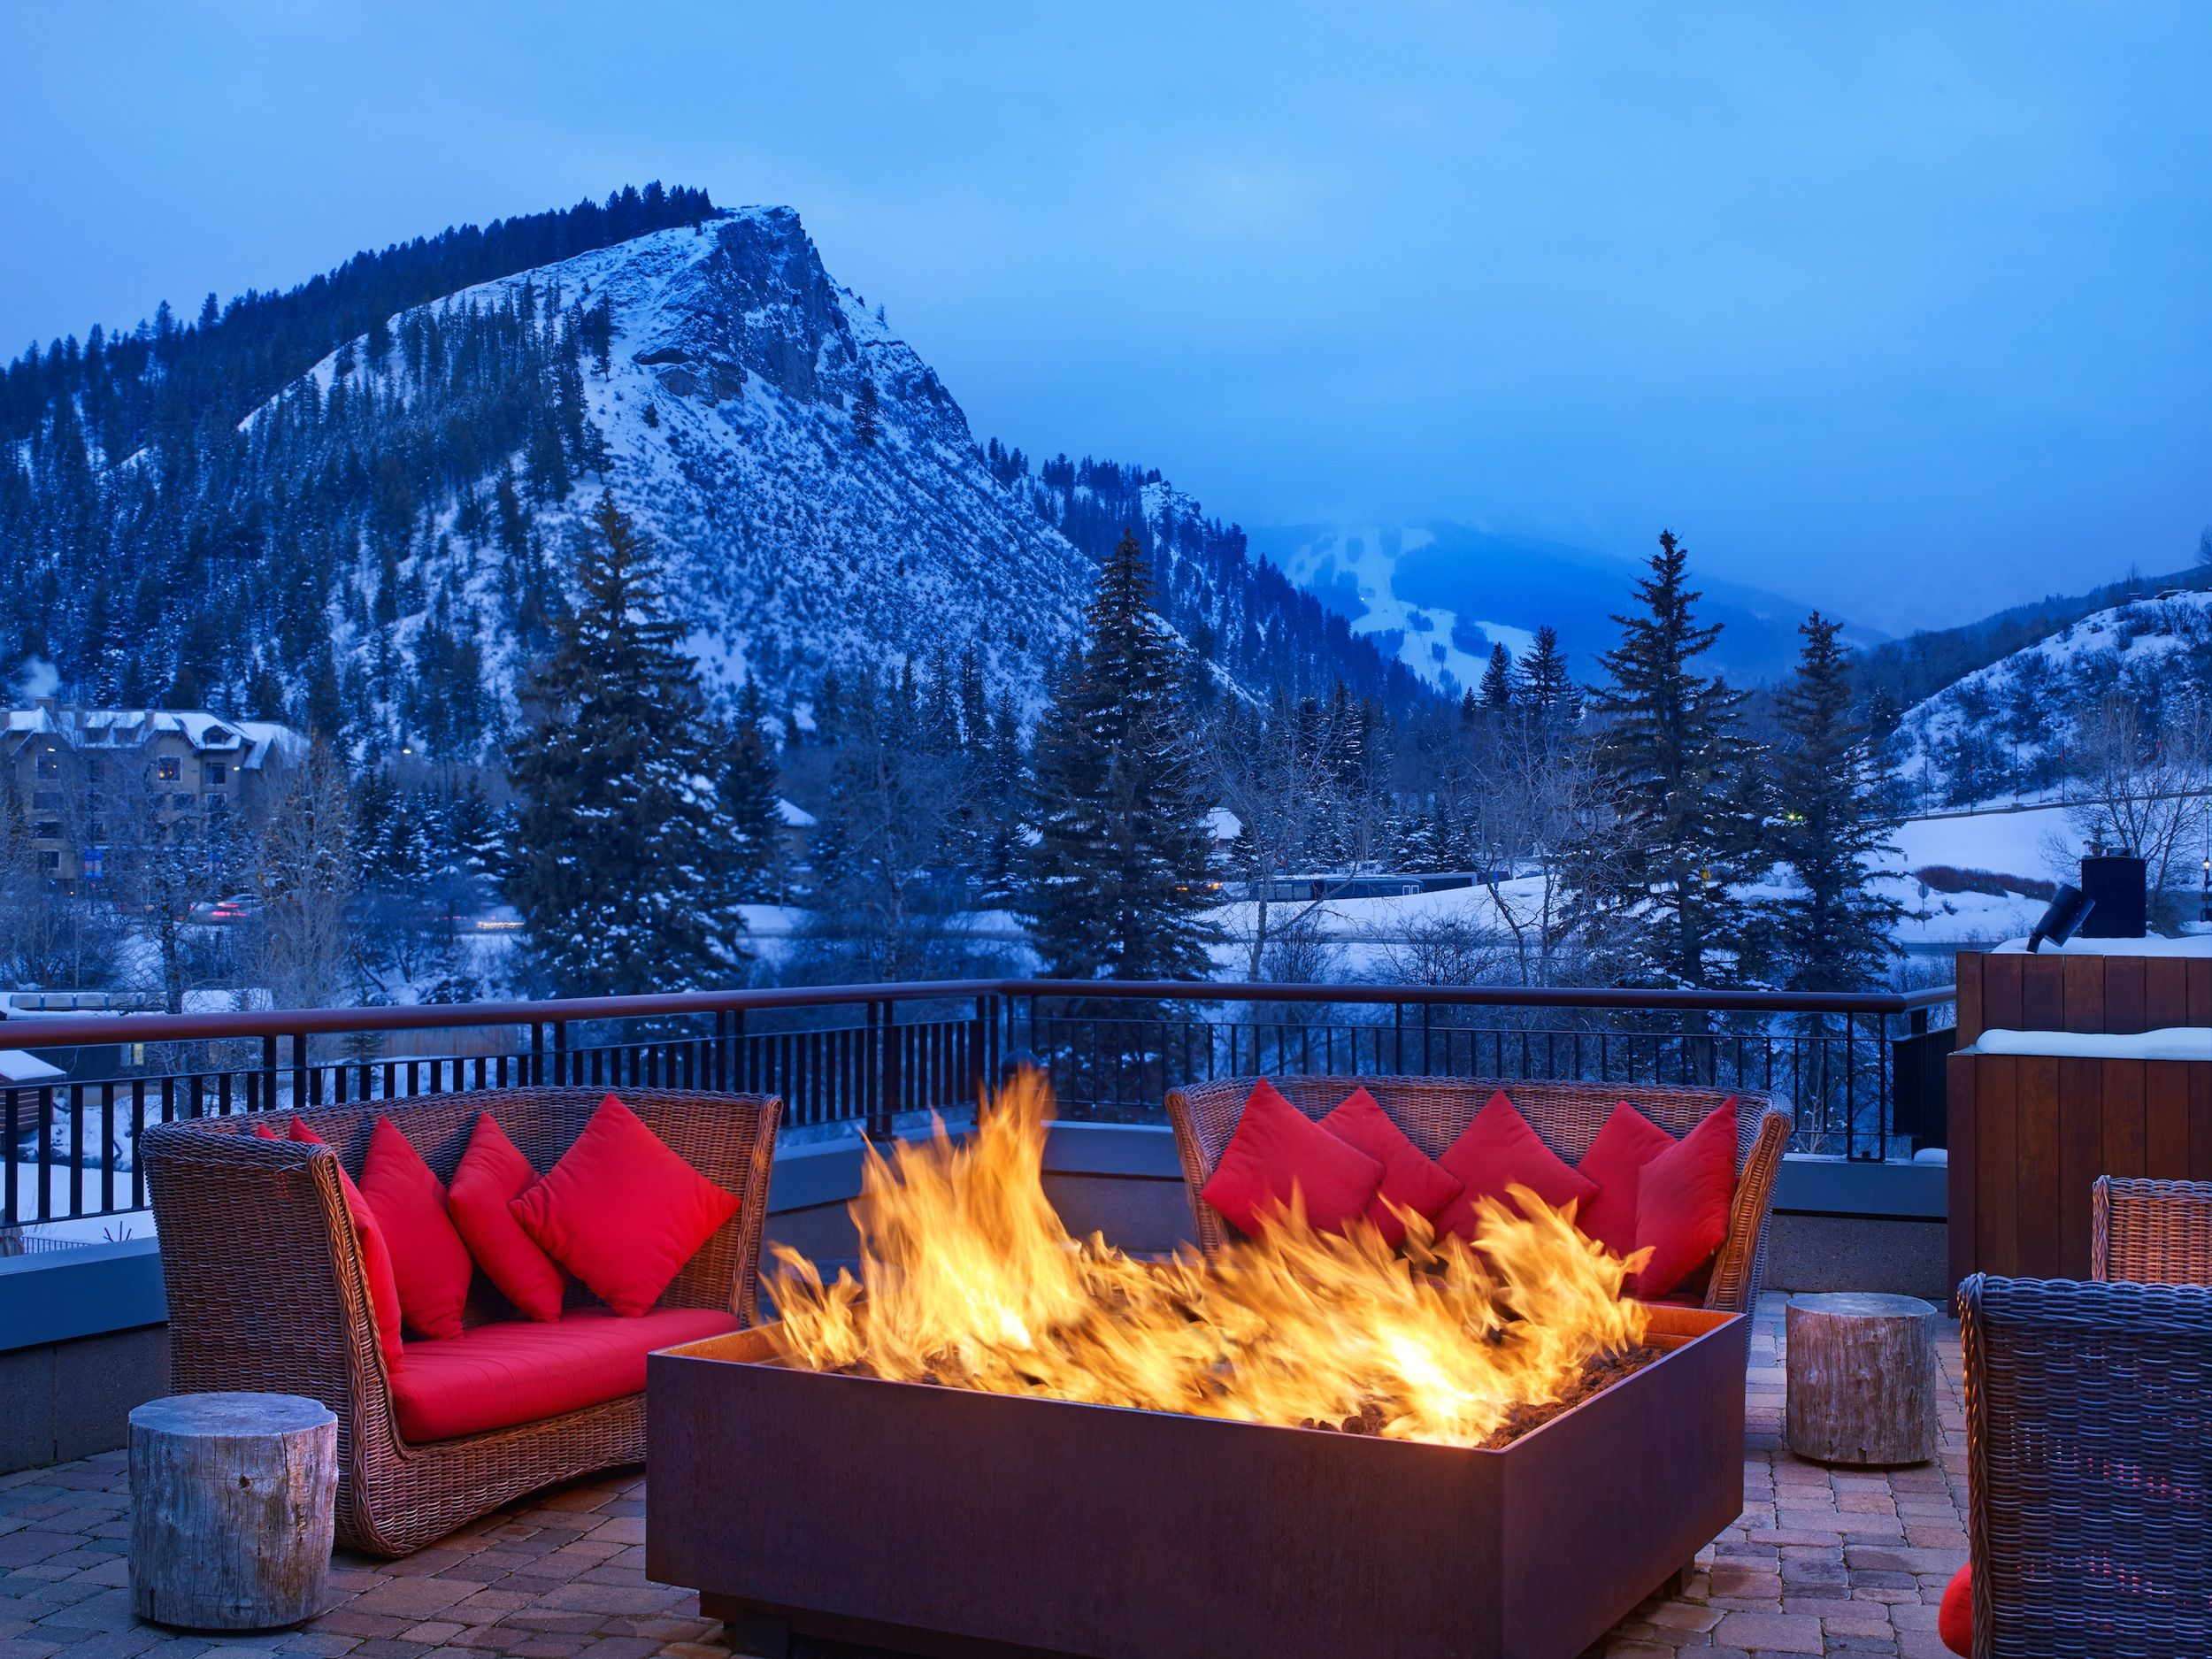 Maya S Patio Fire Pit Is The Perfect Spot To Enjoy Apres Ski